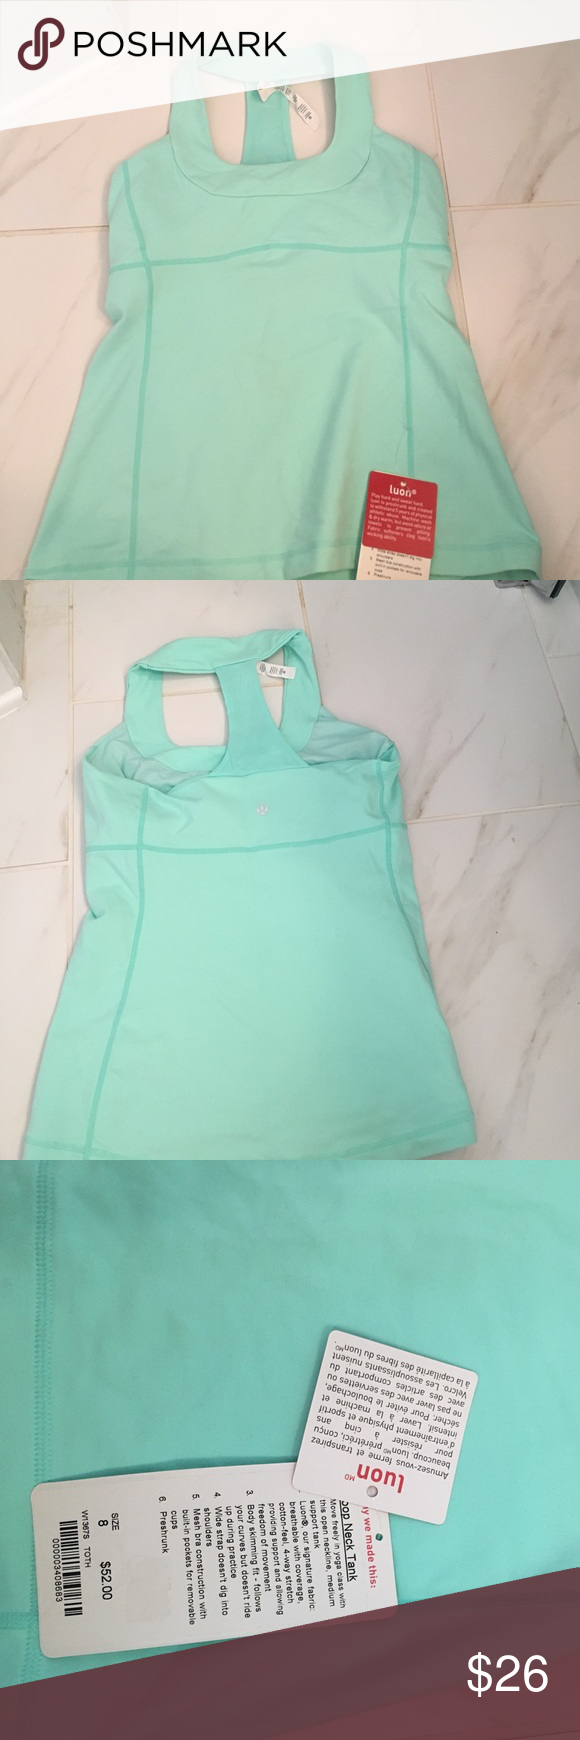 NWT Lululemon Racerback Tank Lululemon racerback tank in a light Aqua color. Has built-in shelf bra. New with tags!! Perfect condition. lululemon athletica Tops Tank Tops